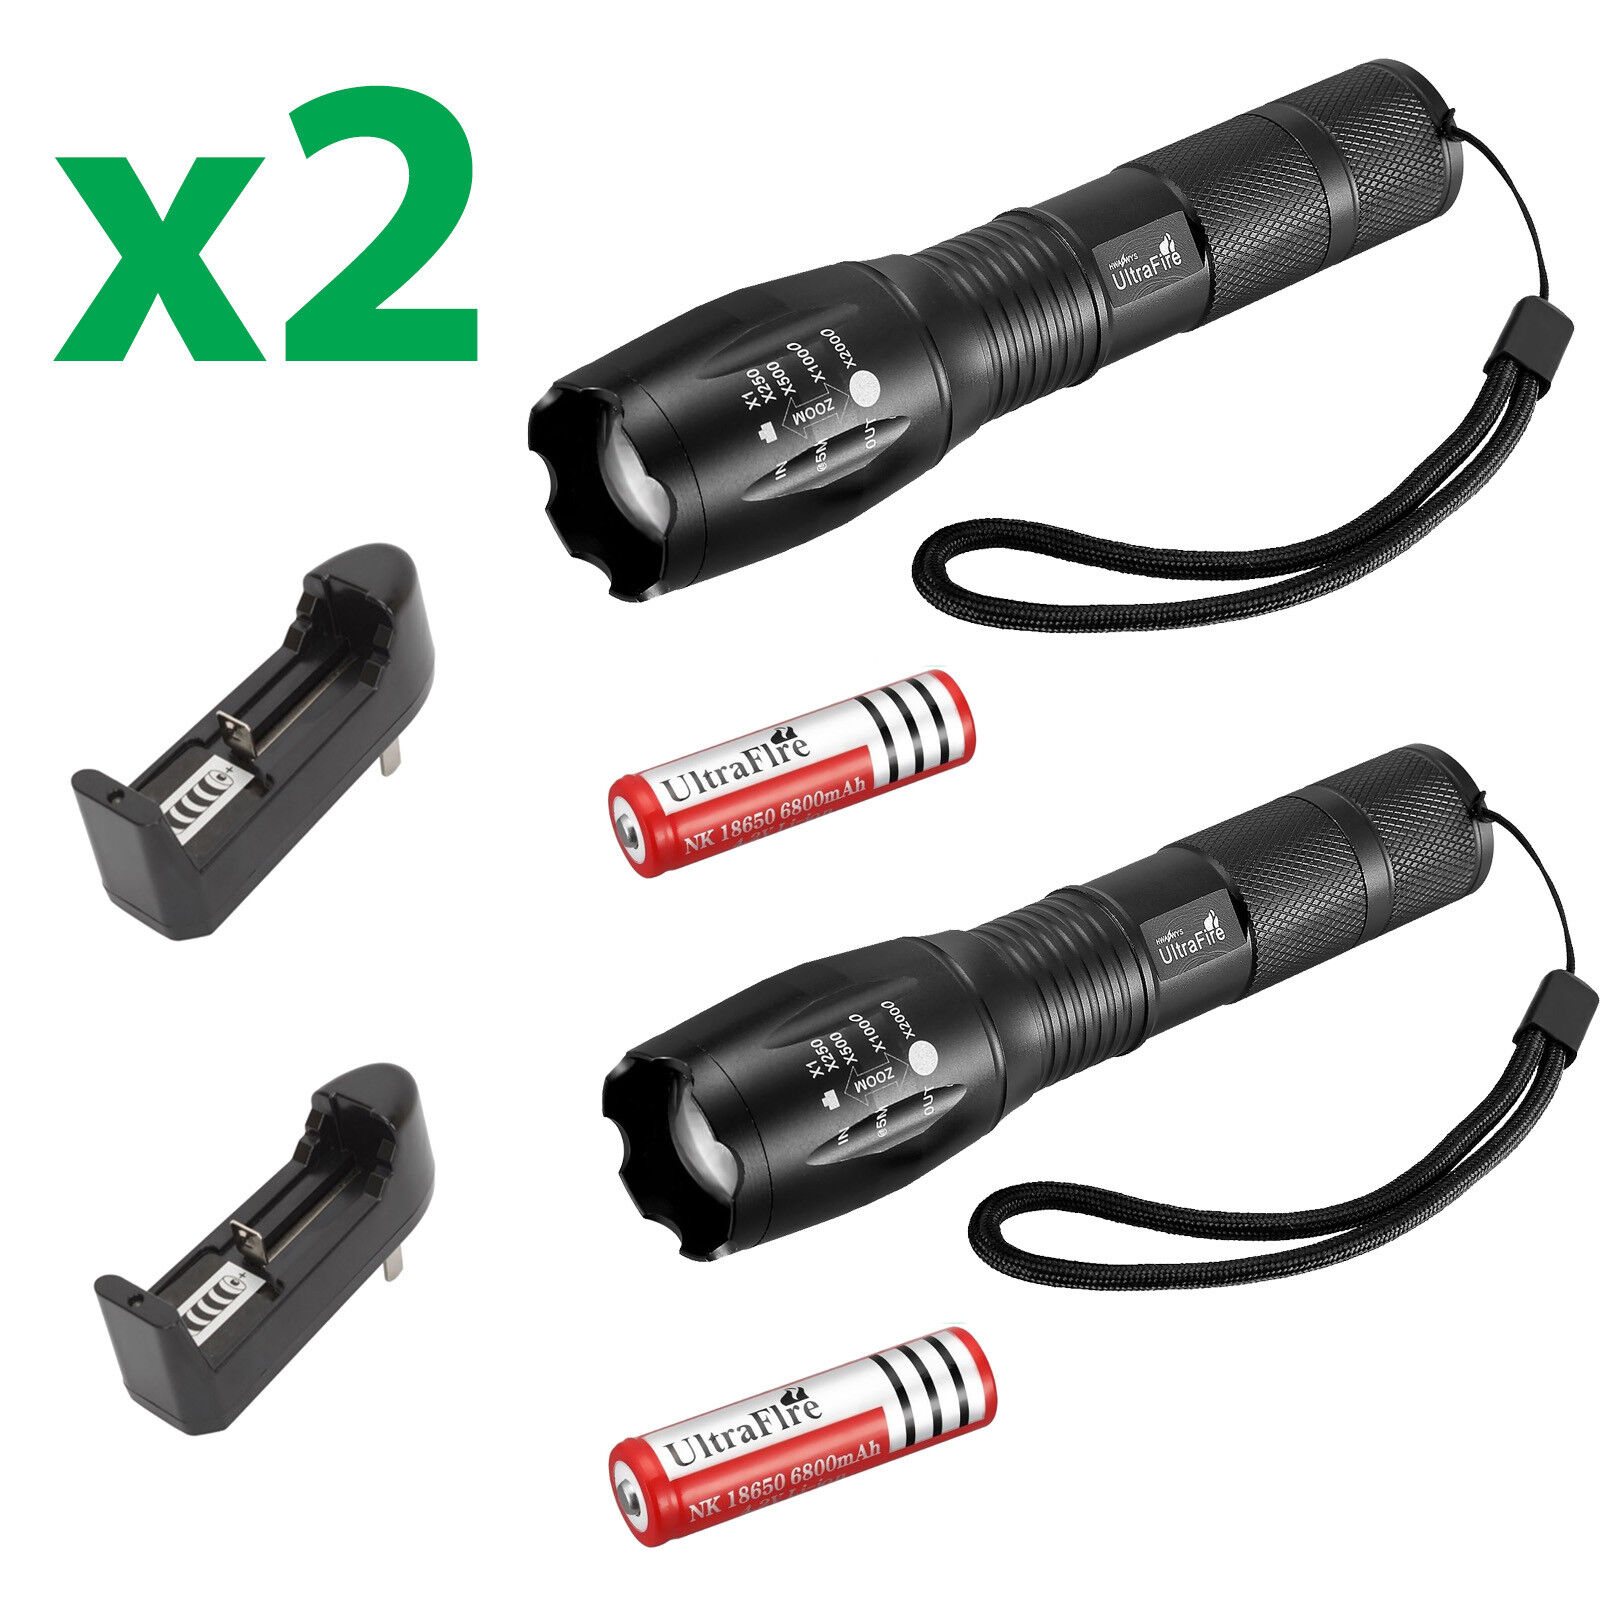 6 X Ultrafire Tactical 15000LM T6 Power LED Zoom Flashlight + 18650&Charger USA 2 Flashlight,2Battery,2Charger